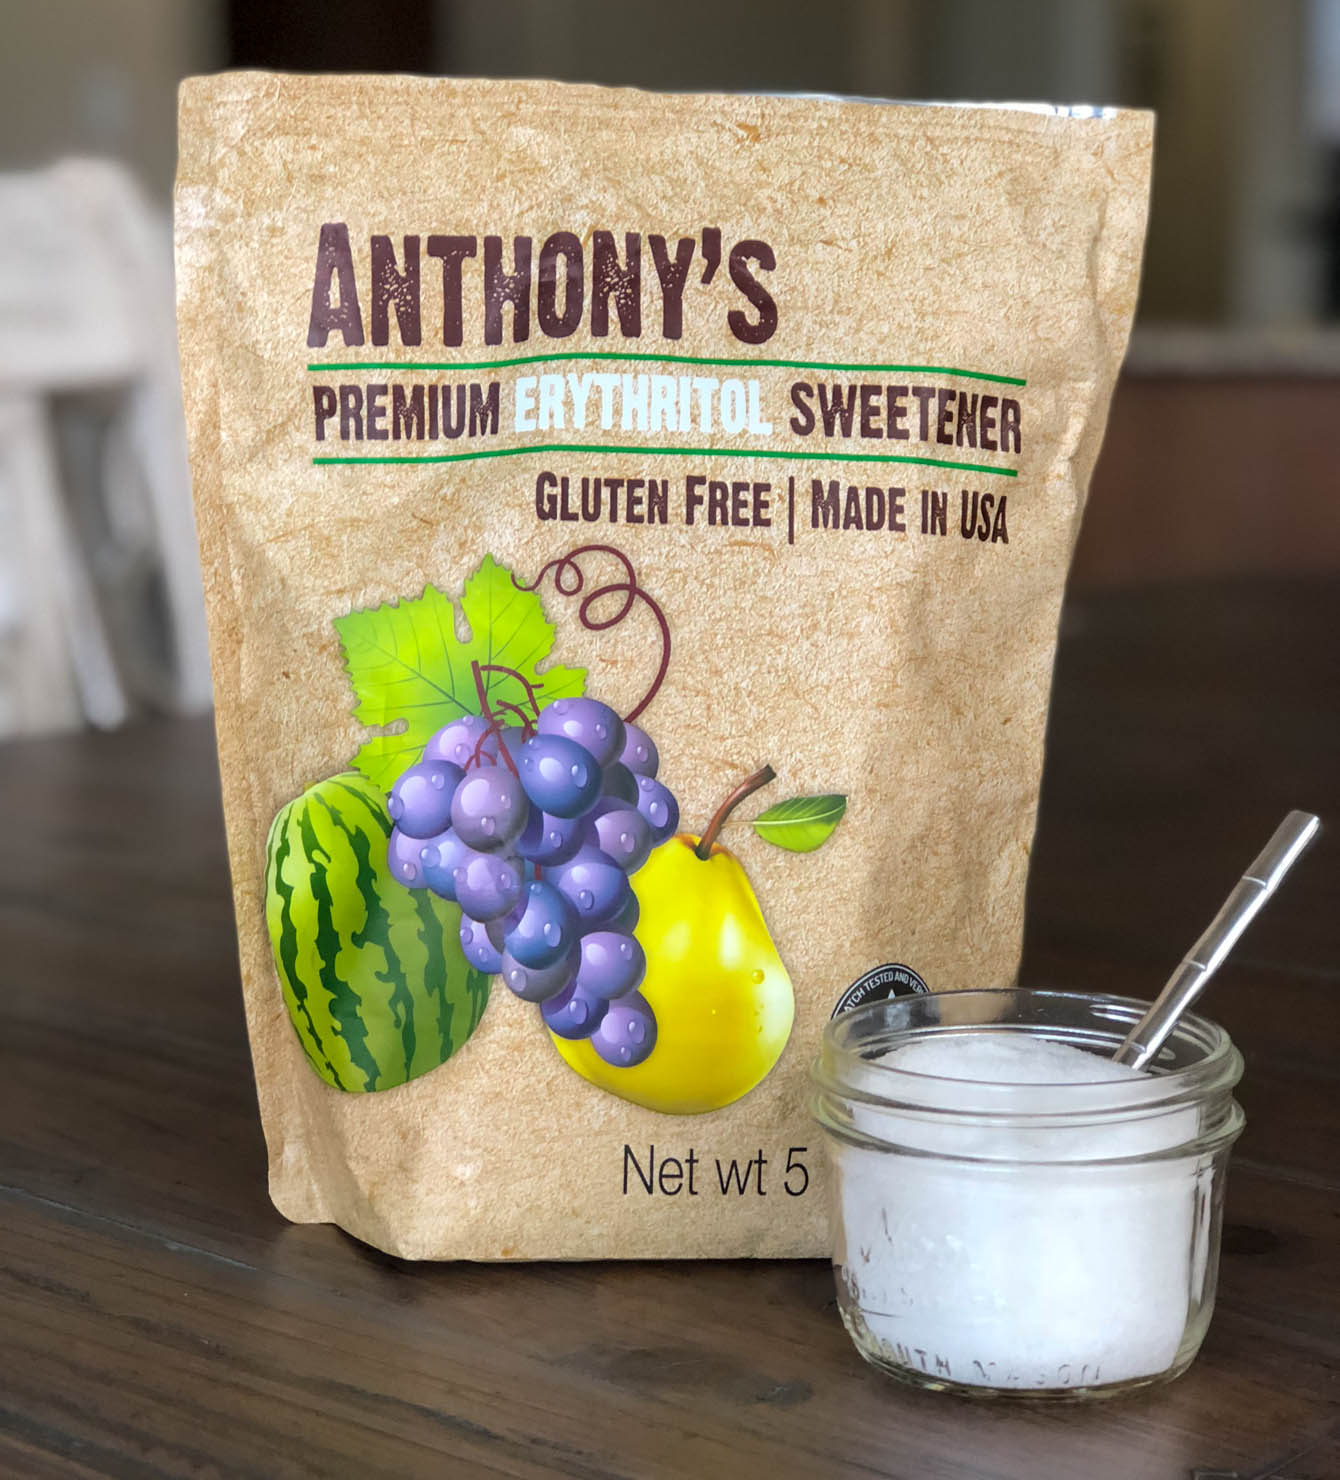 Anthony's Erythritol Sweetener 5lbs. - for keto diet